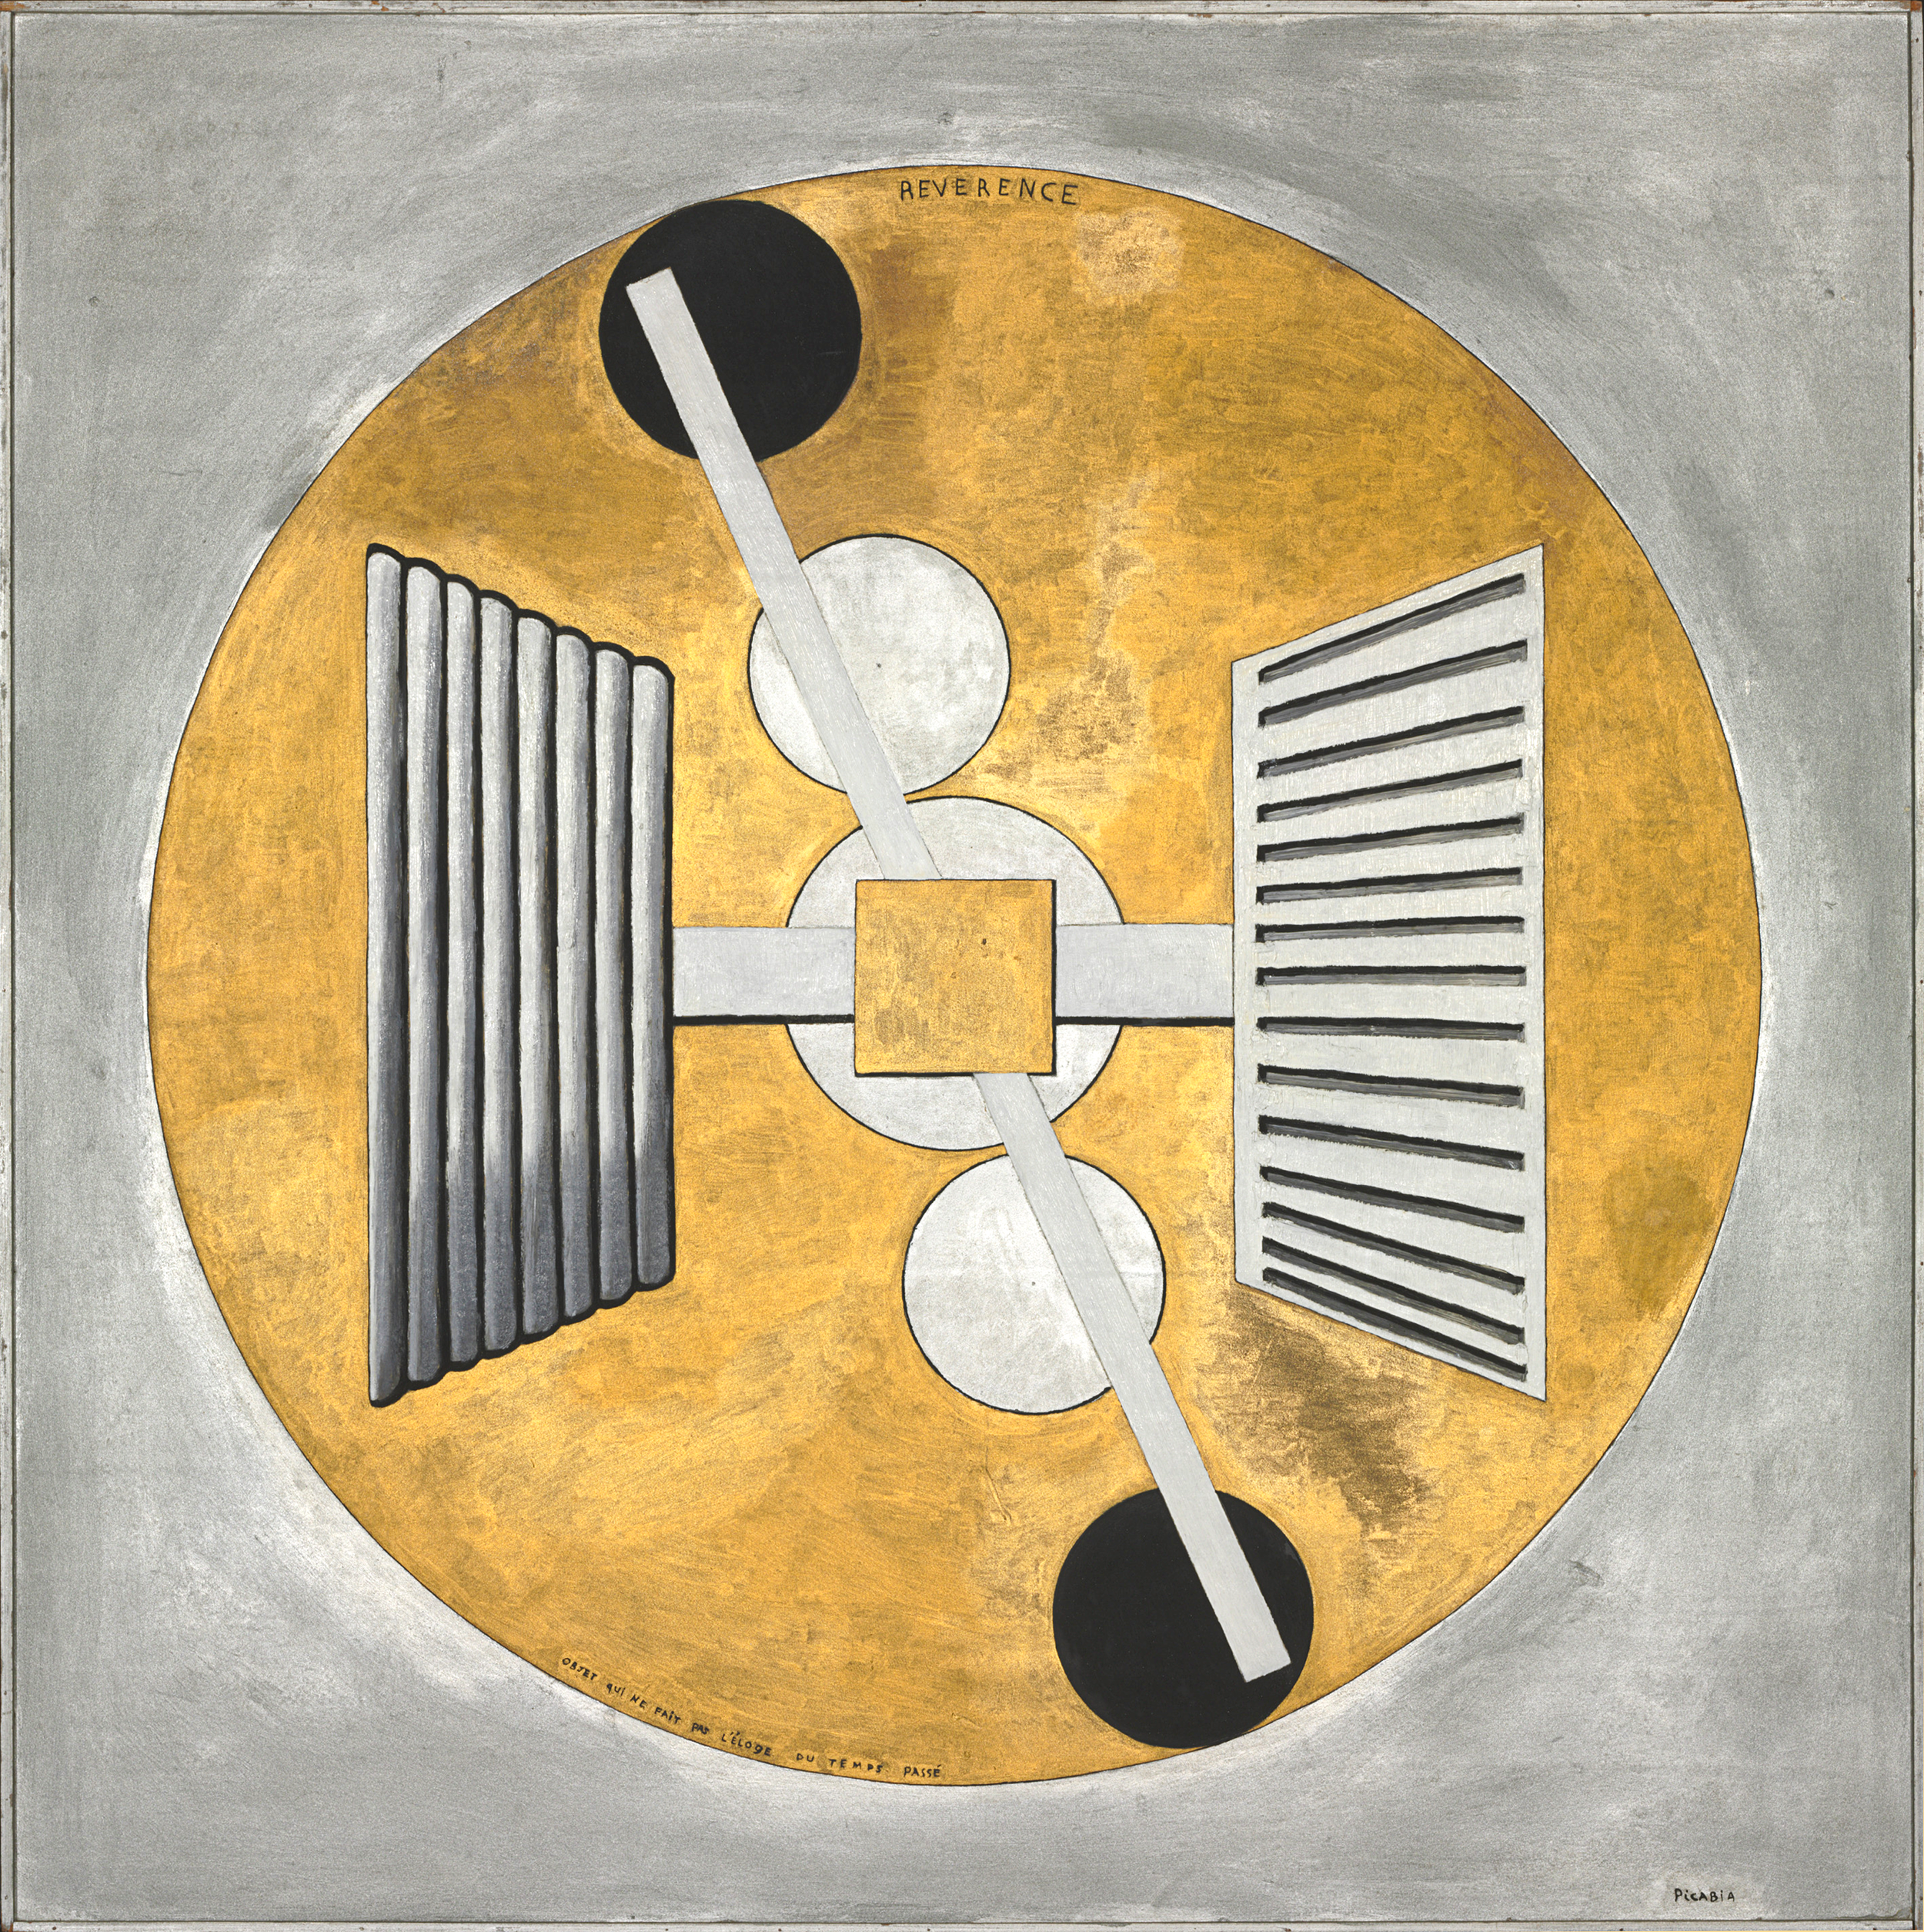 Francis Picabia,  Révérence , 1915, Oil and metallic paint on paperboard, courtesy of The Baltimore Museum of Art, Baltimore, MD.